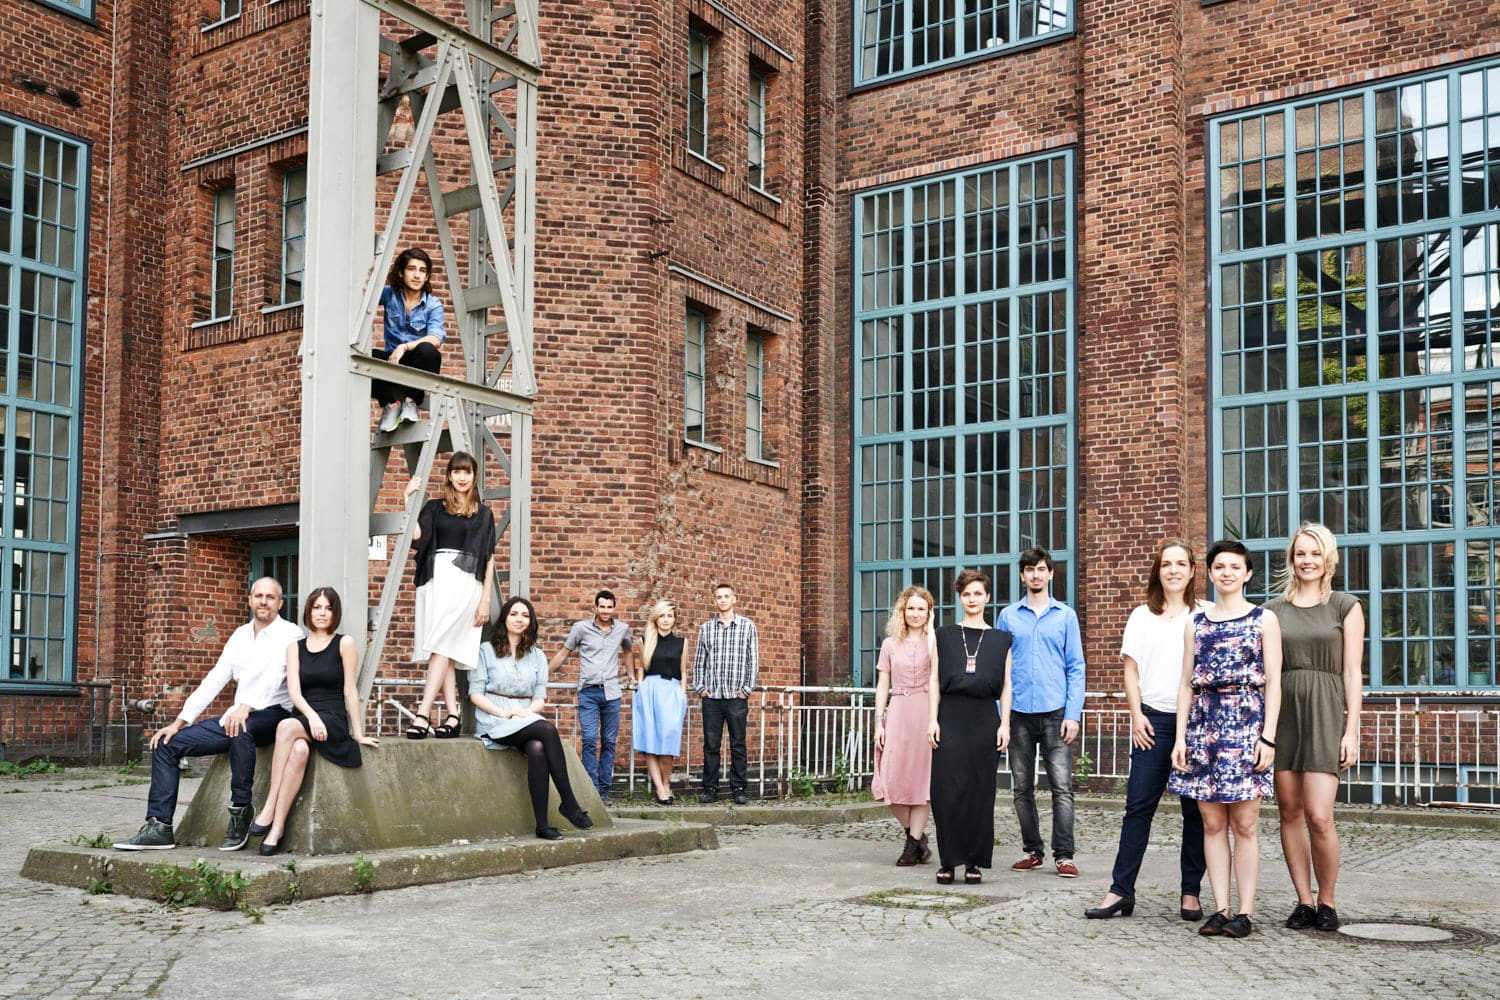 Teamfoto; Gruppenfoto; Team; The Hundert Vol 06; startup; gründer; magazin; editorial; Saskia Uppenkamp; Portrait; Fotograf; Fotografin; Berlin; Friedrichshain; Studio; On Location; Reportage